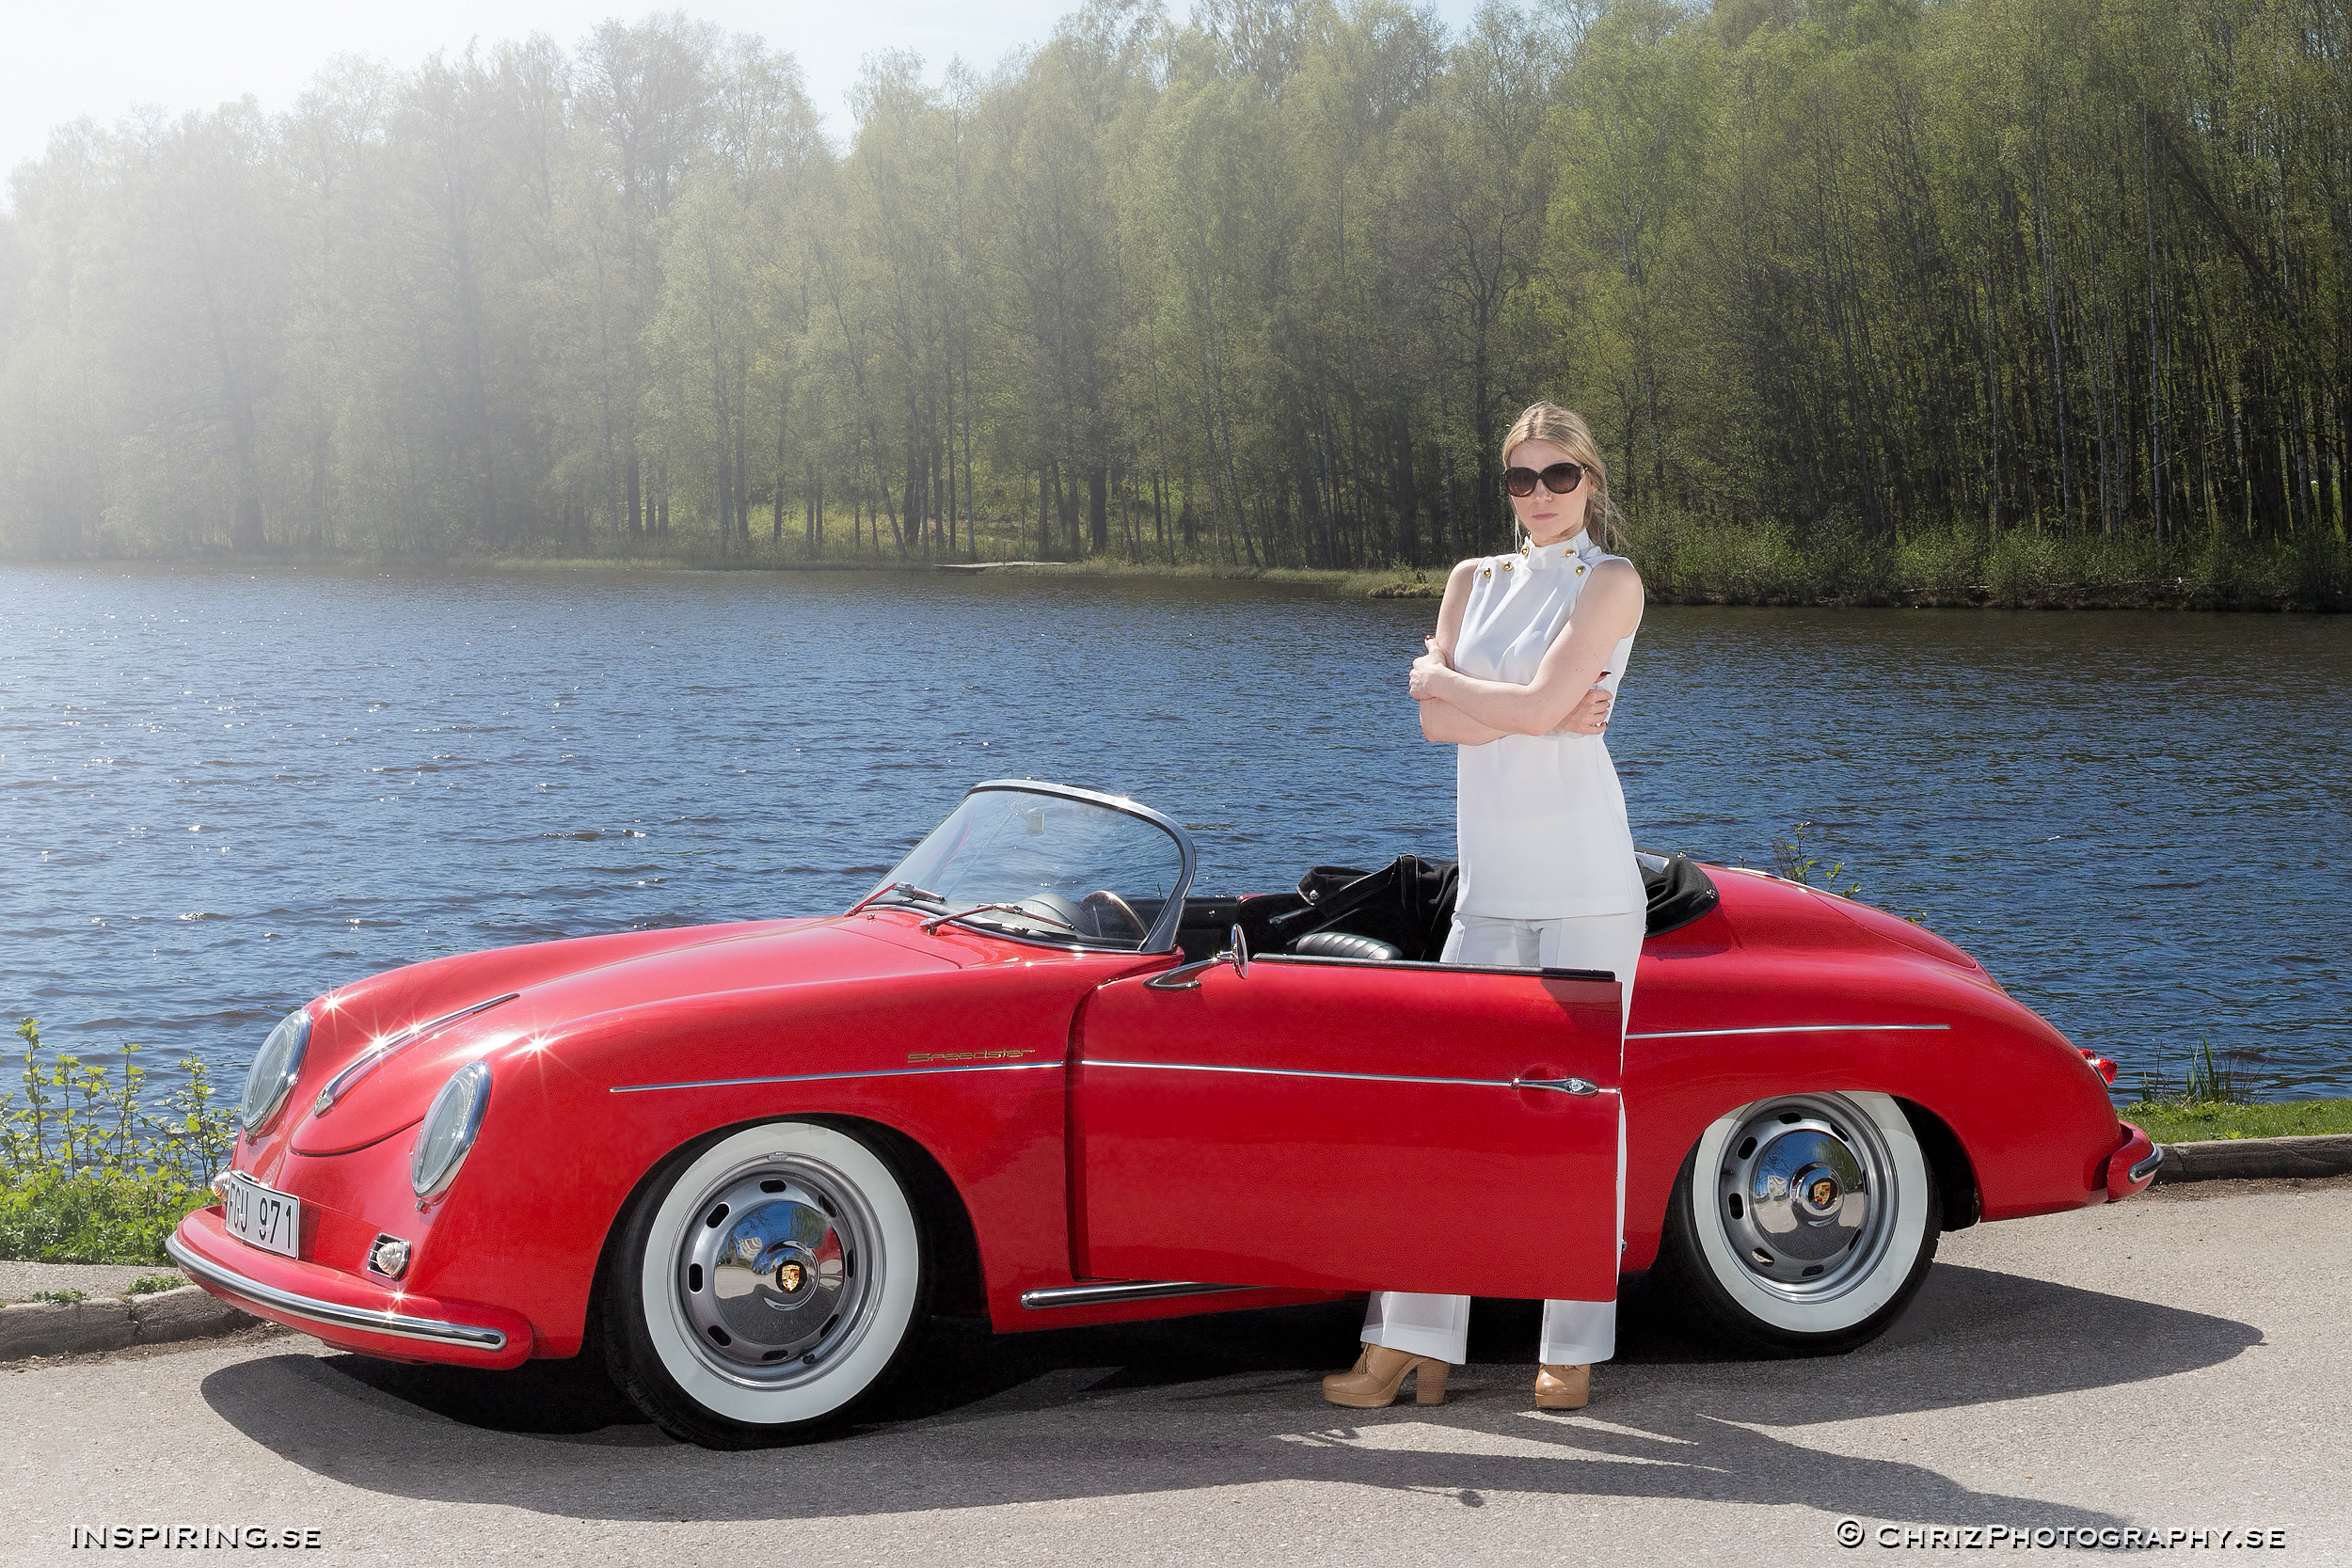 Inspiring.se_OUTTHERE_copyright_ChrizPhotography.se_356Speedster_1.jpg